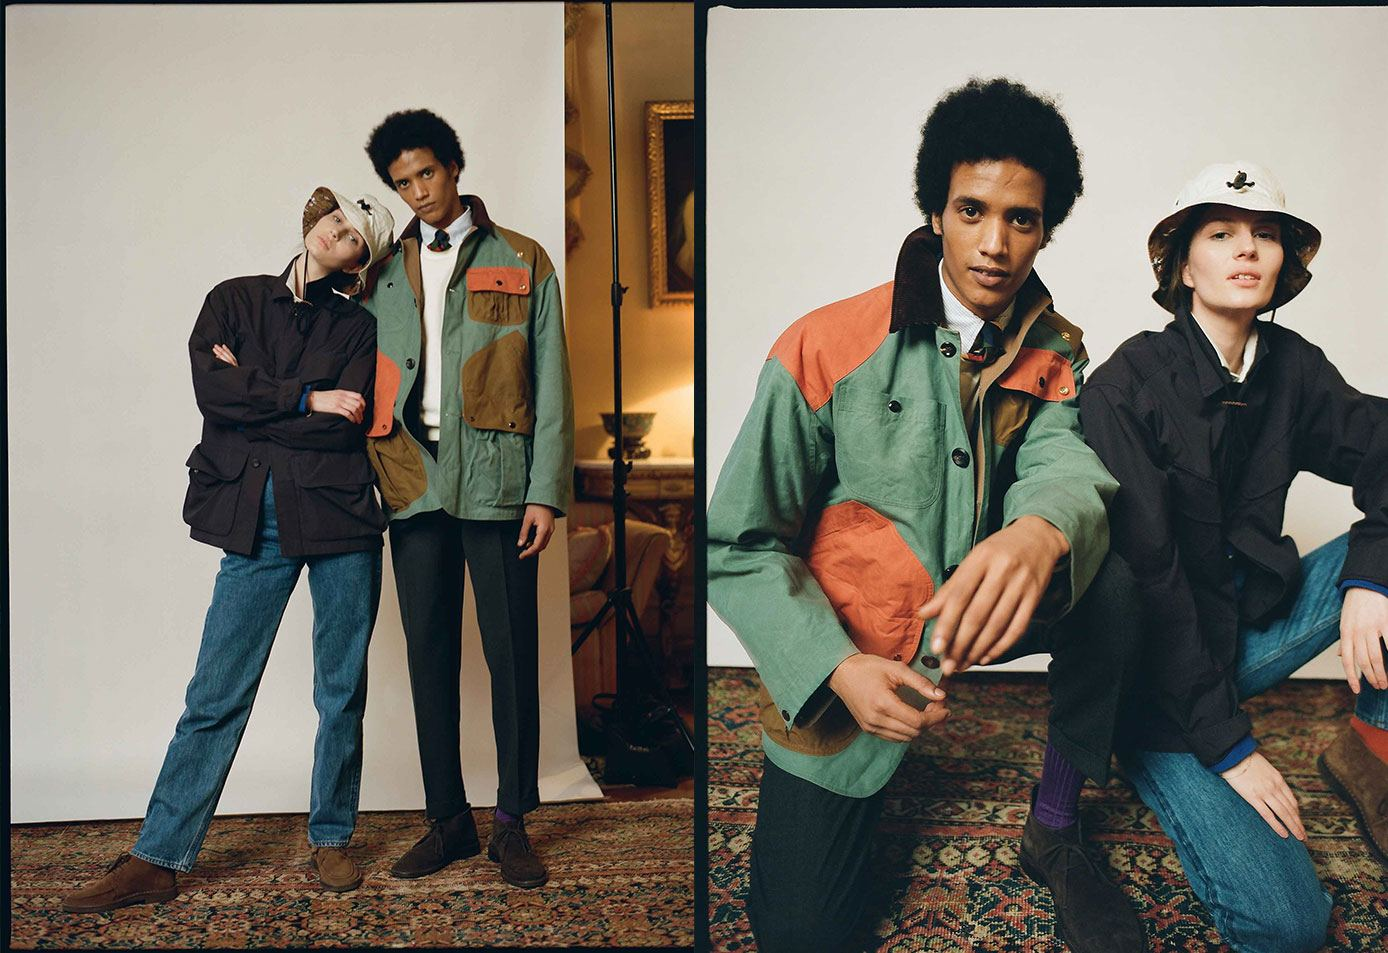 The Patchwork Waxed Cotton Chasseur Jacket